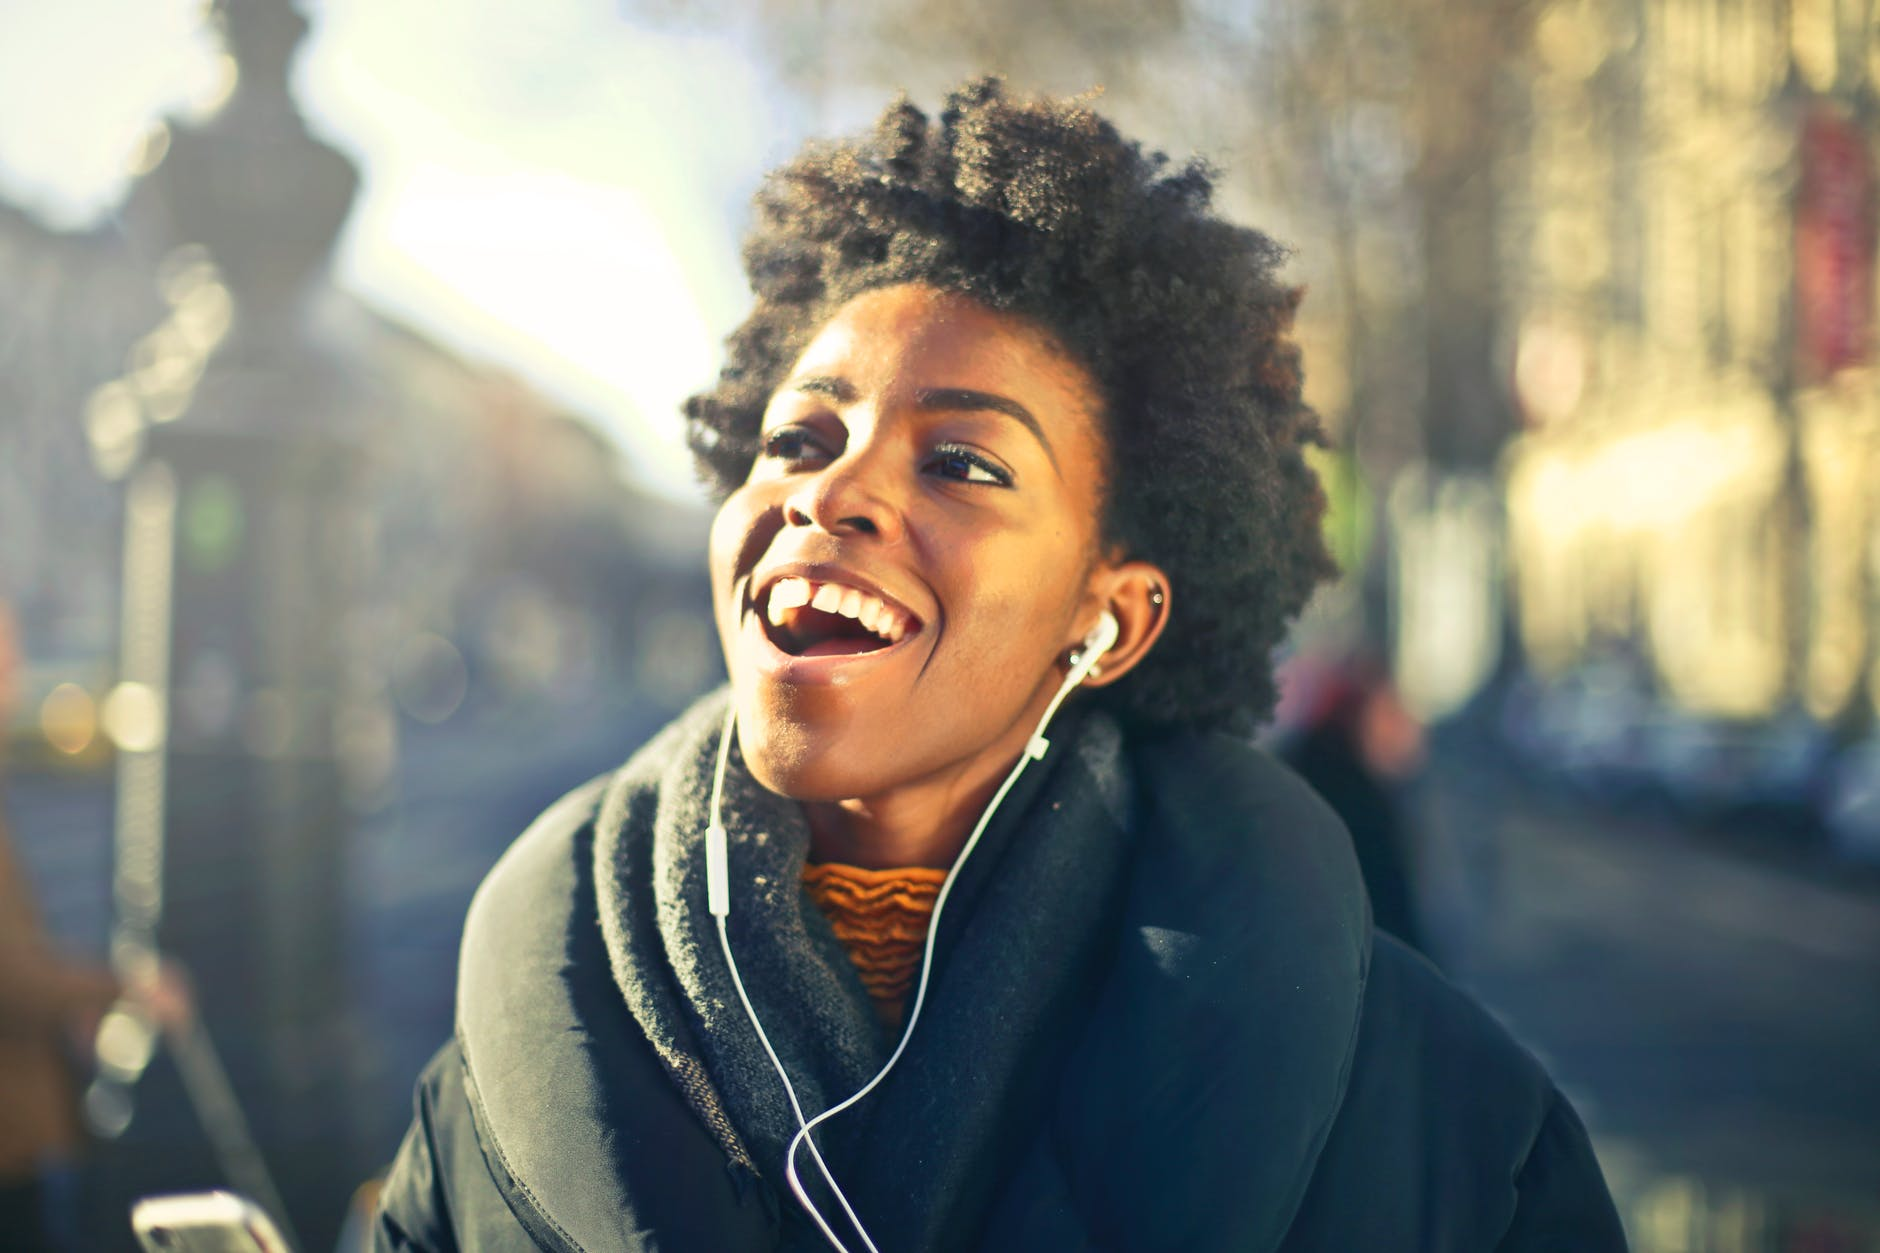 close up photo of a woman listening to music